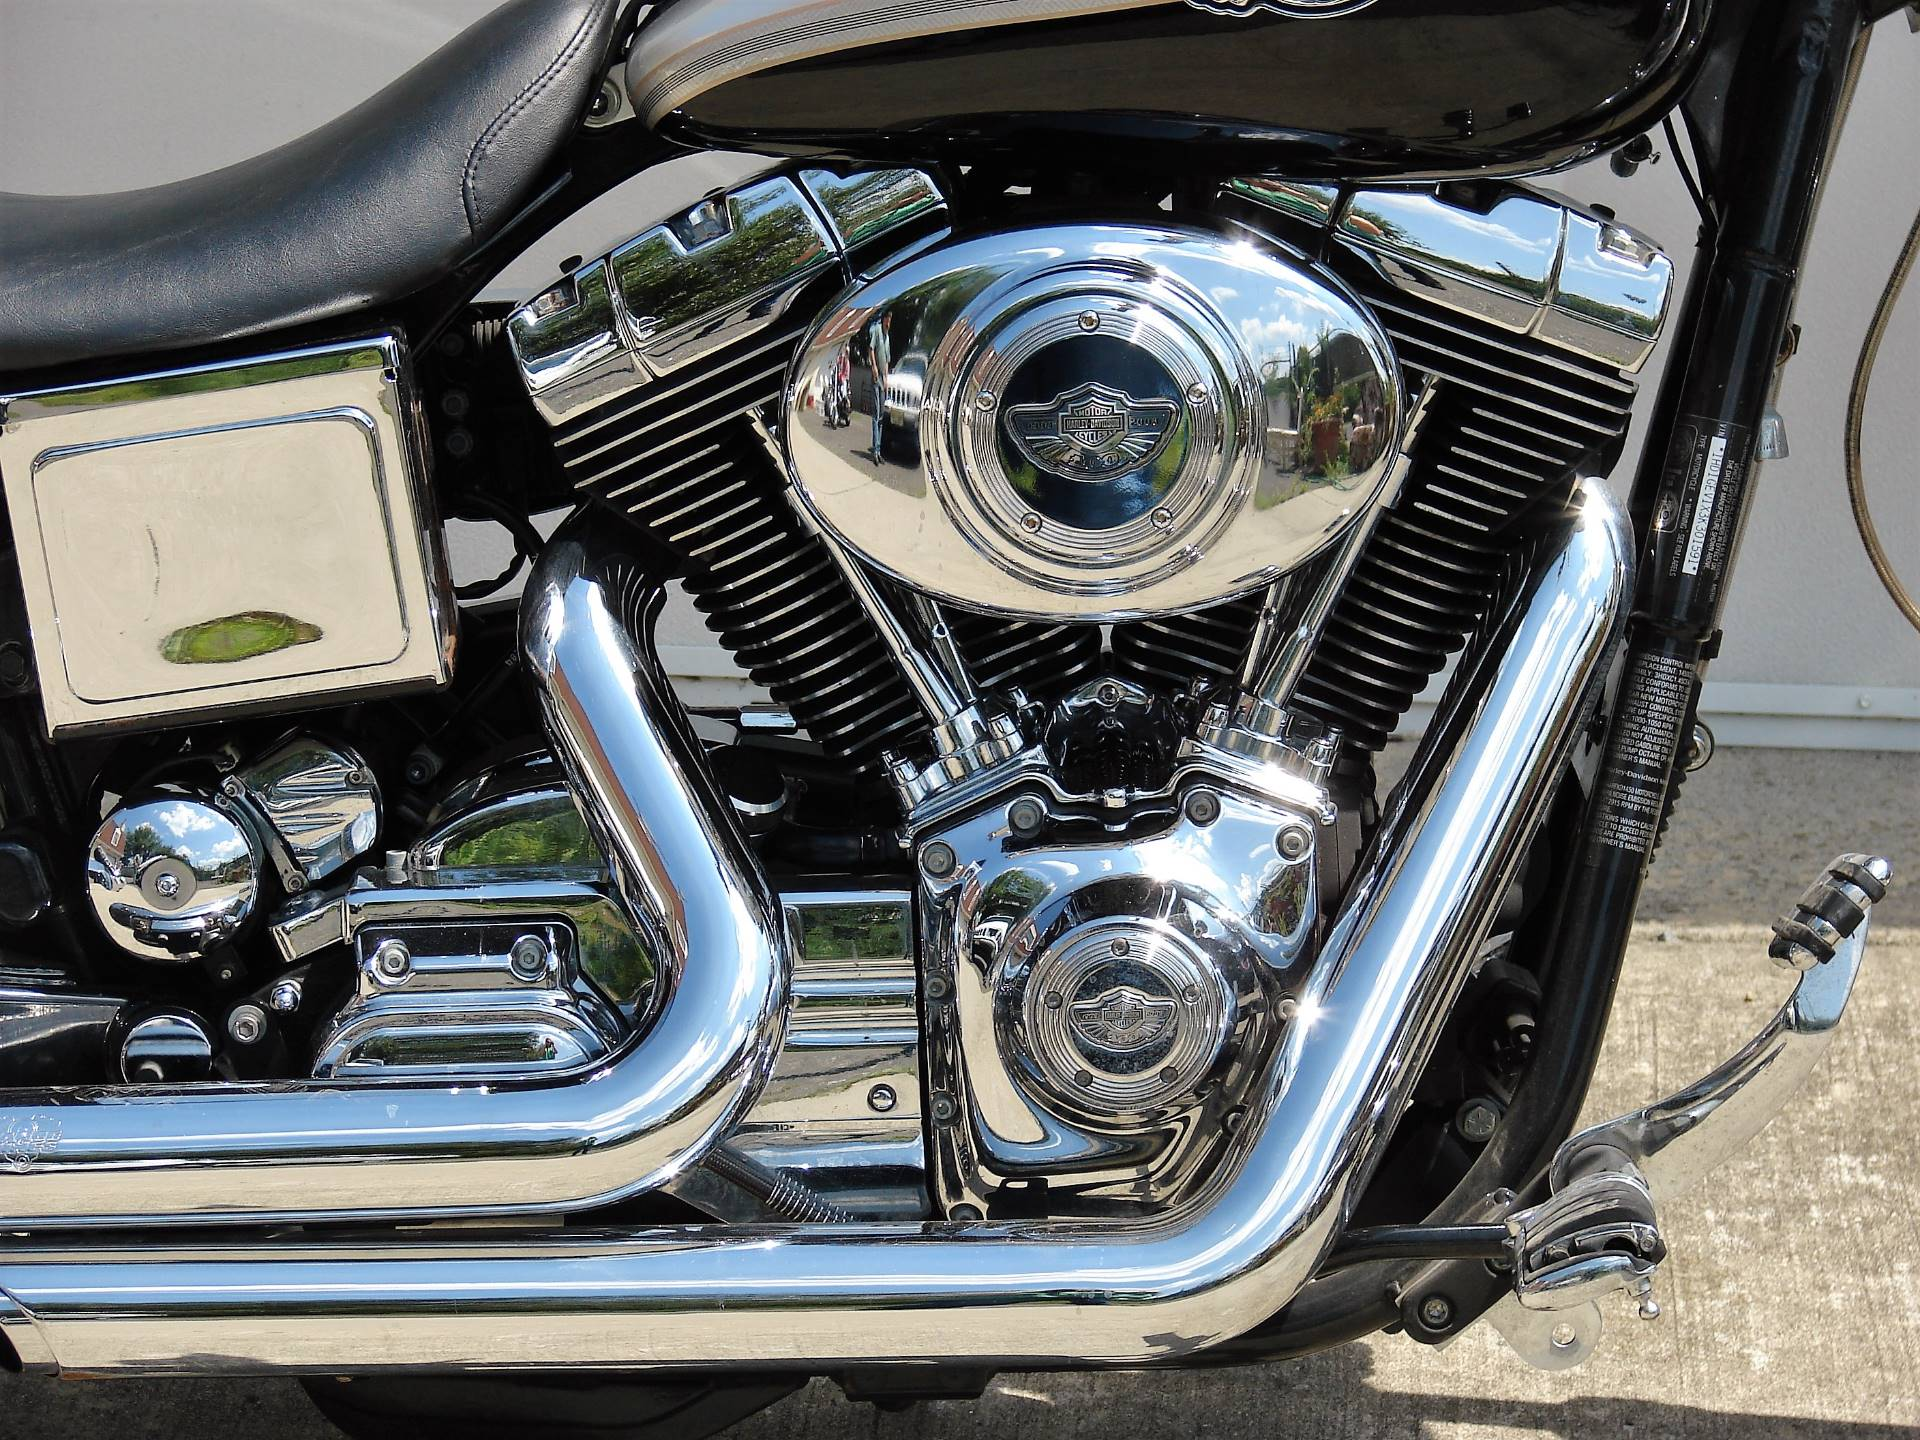 2003 Harley-Davidson Dyna Wide Glide - (Anniversary Edition) in  Williamstown, New